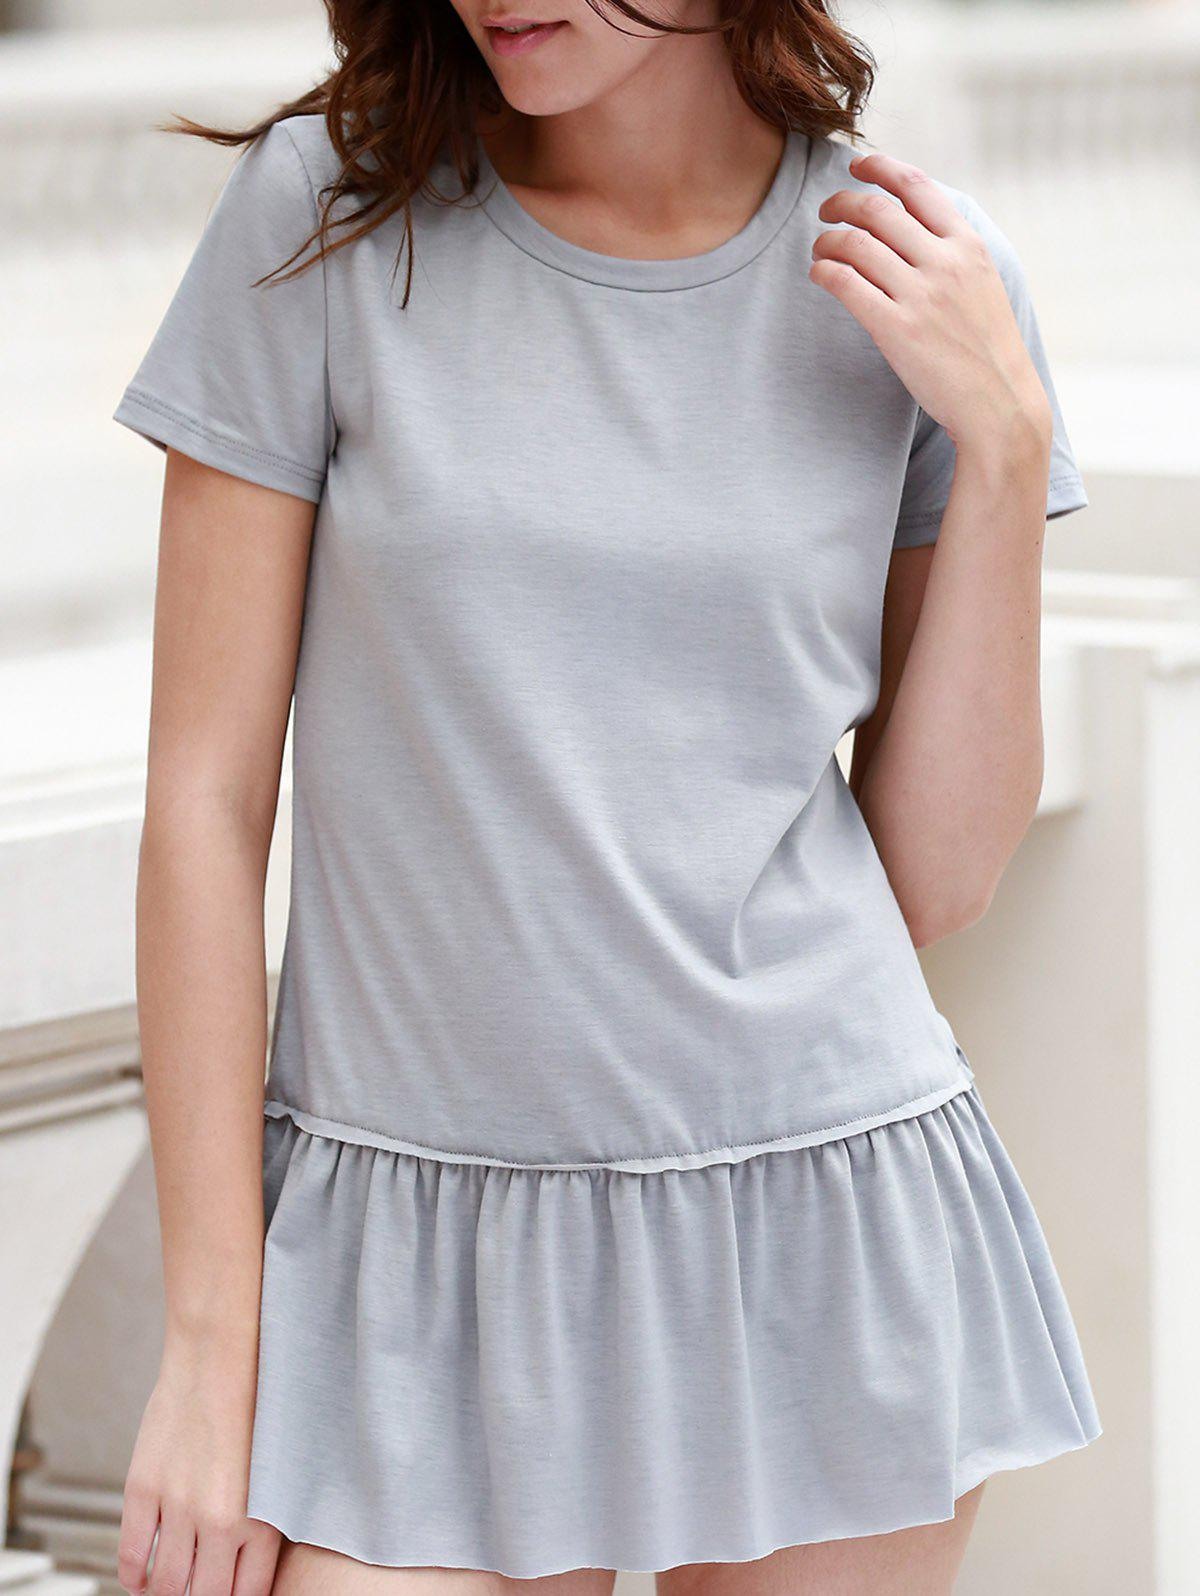 Stylish Round Neck Short Sleeve Solid Color Pleated Women's T-Shirt - GRAY S